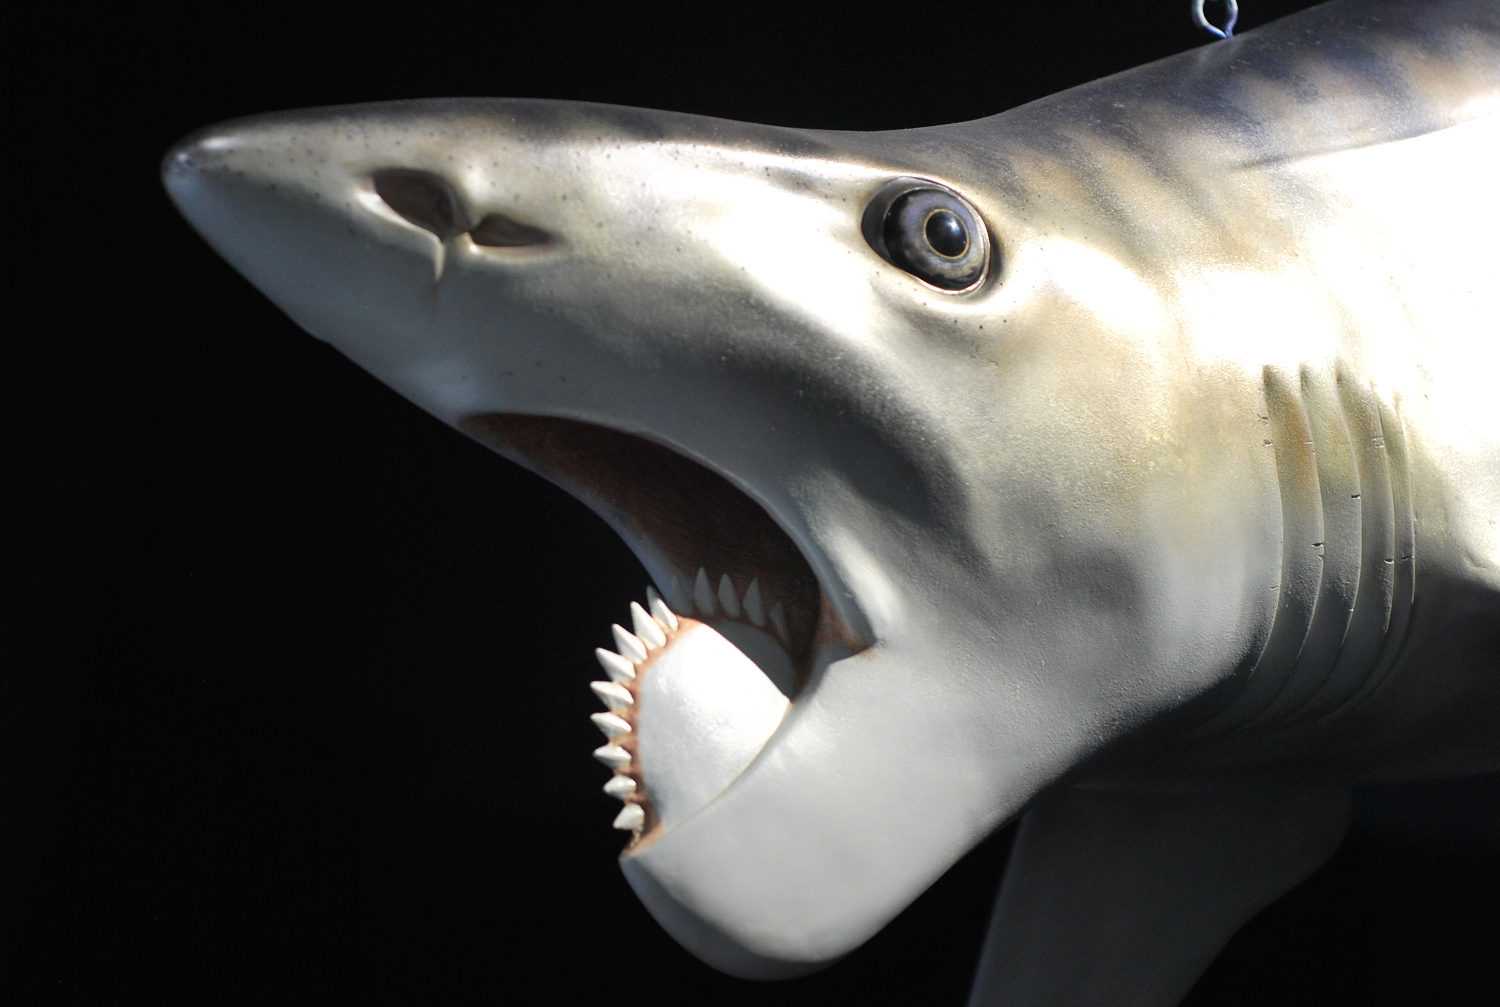 4) Helicoprion